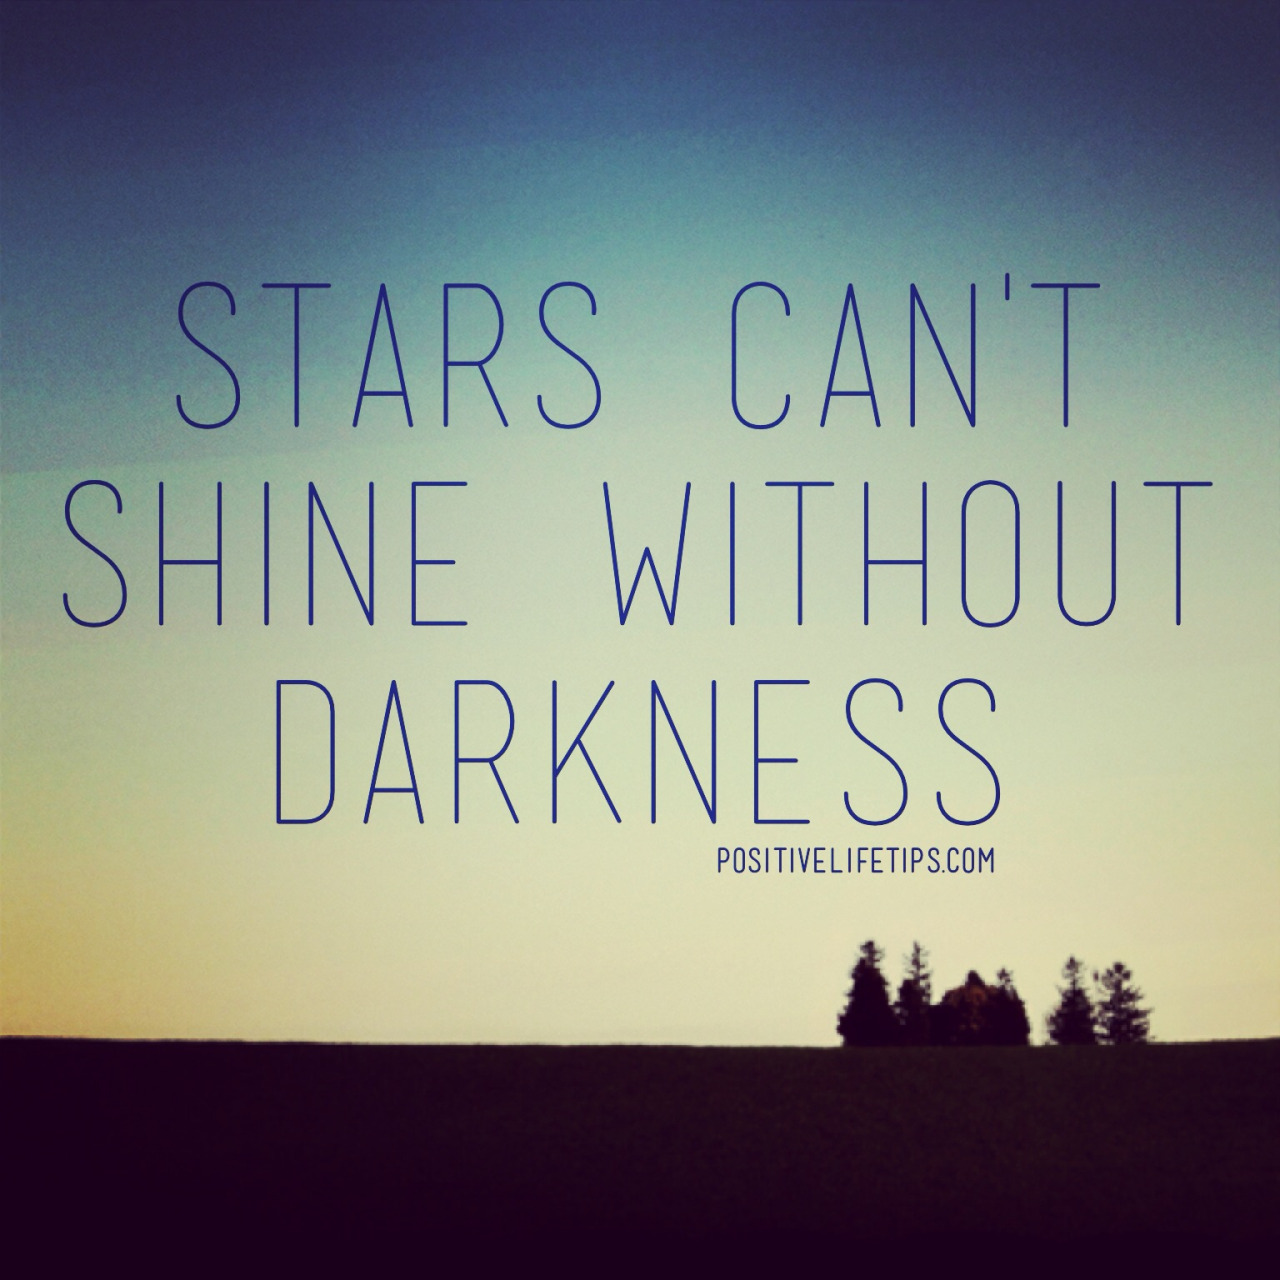 go through darkness quotes quotesgram